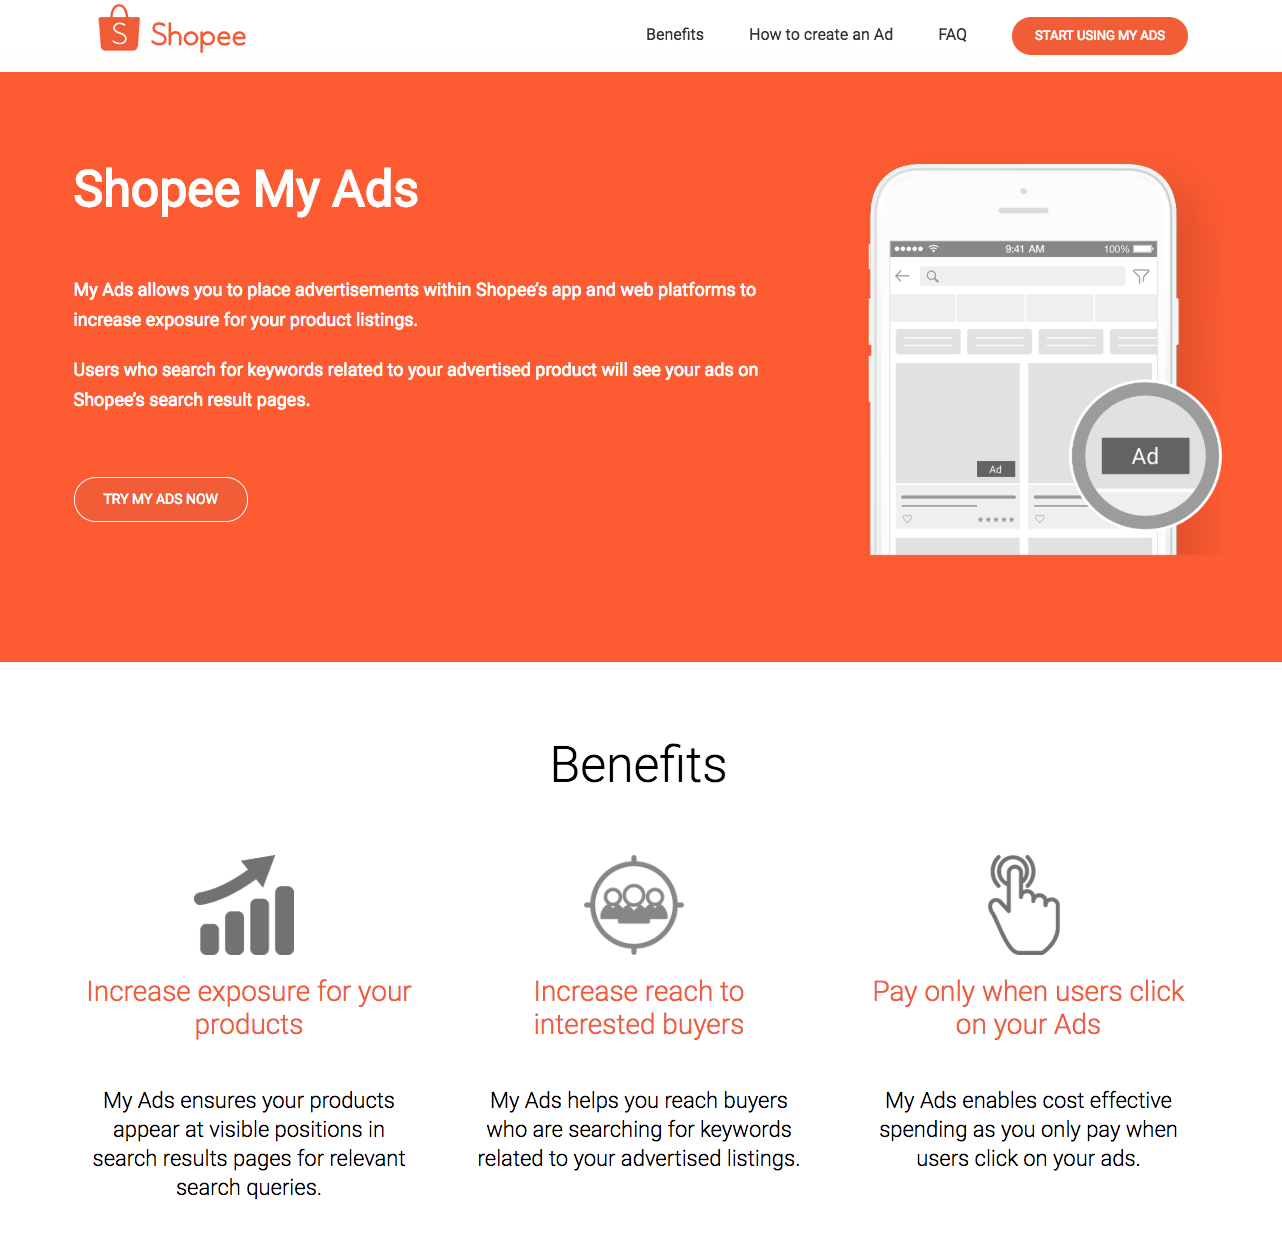 shopee-ads-benefits